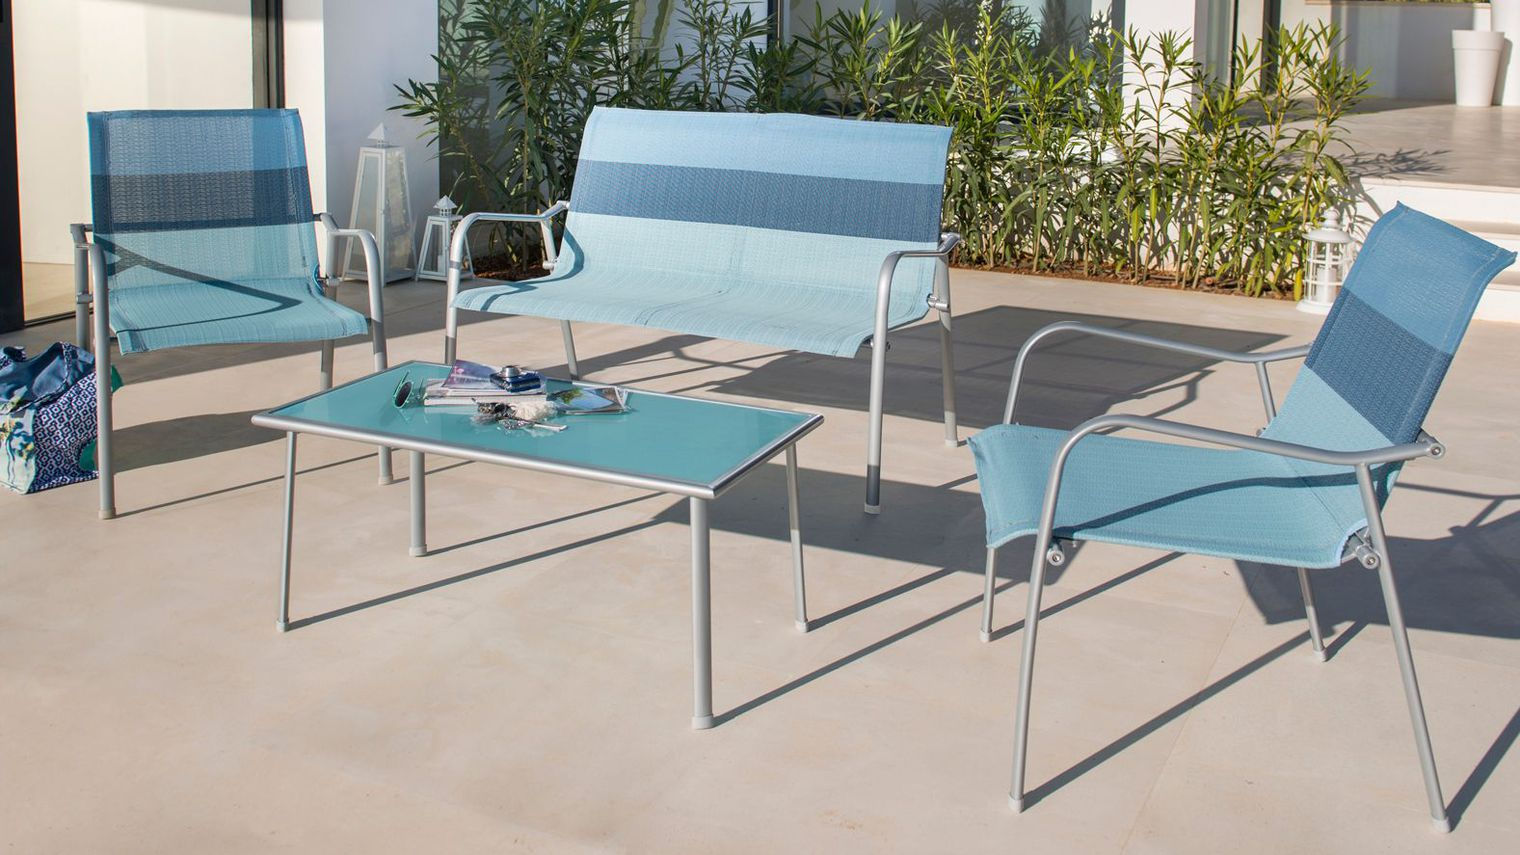 Table basse salon de jardin pas cher mobilier design for Mobilier design pas cher